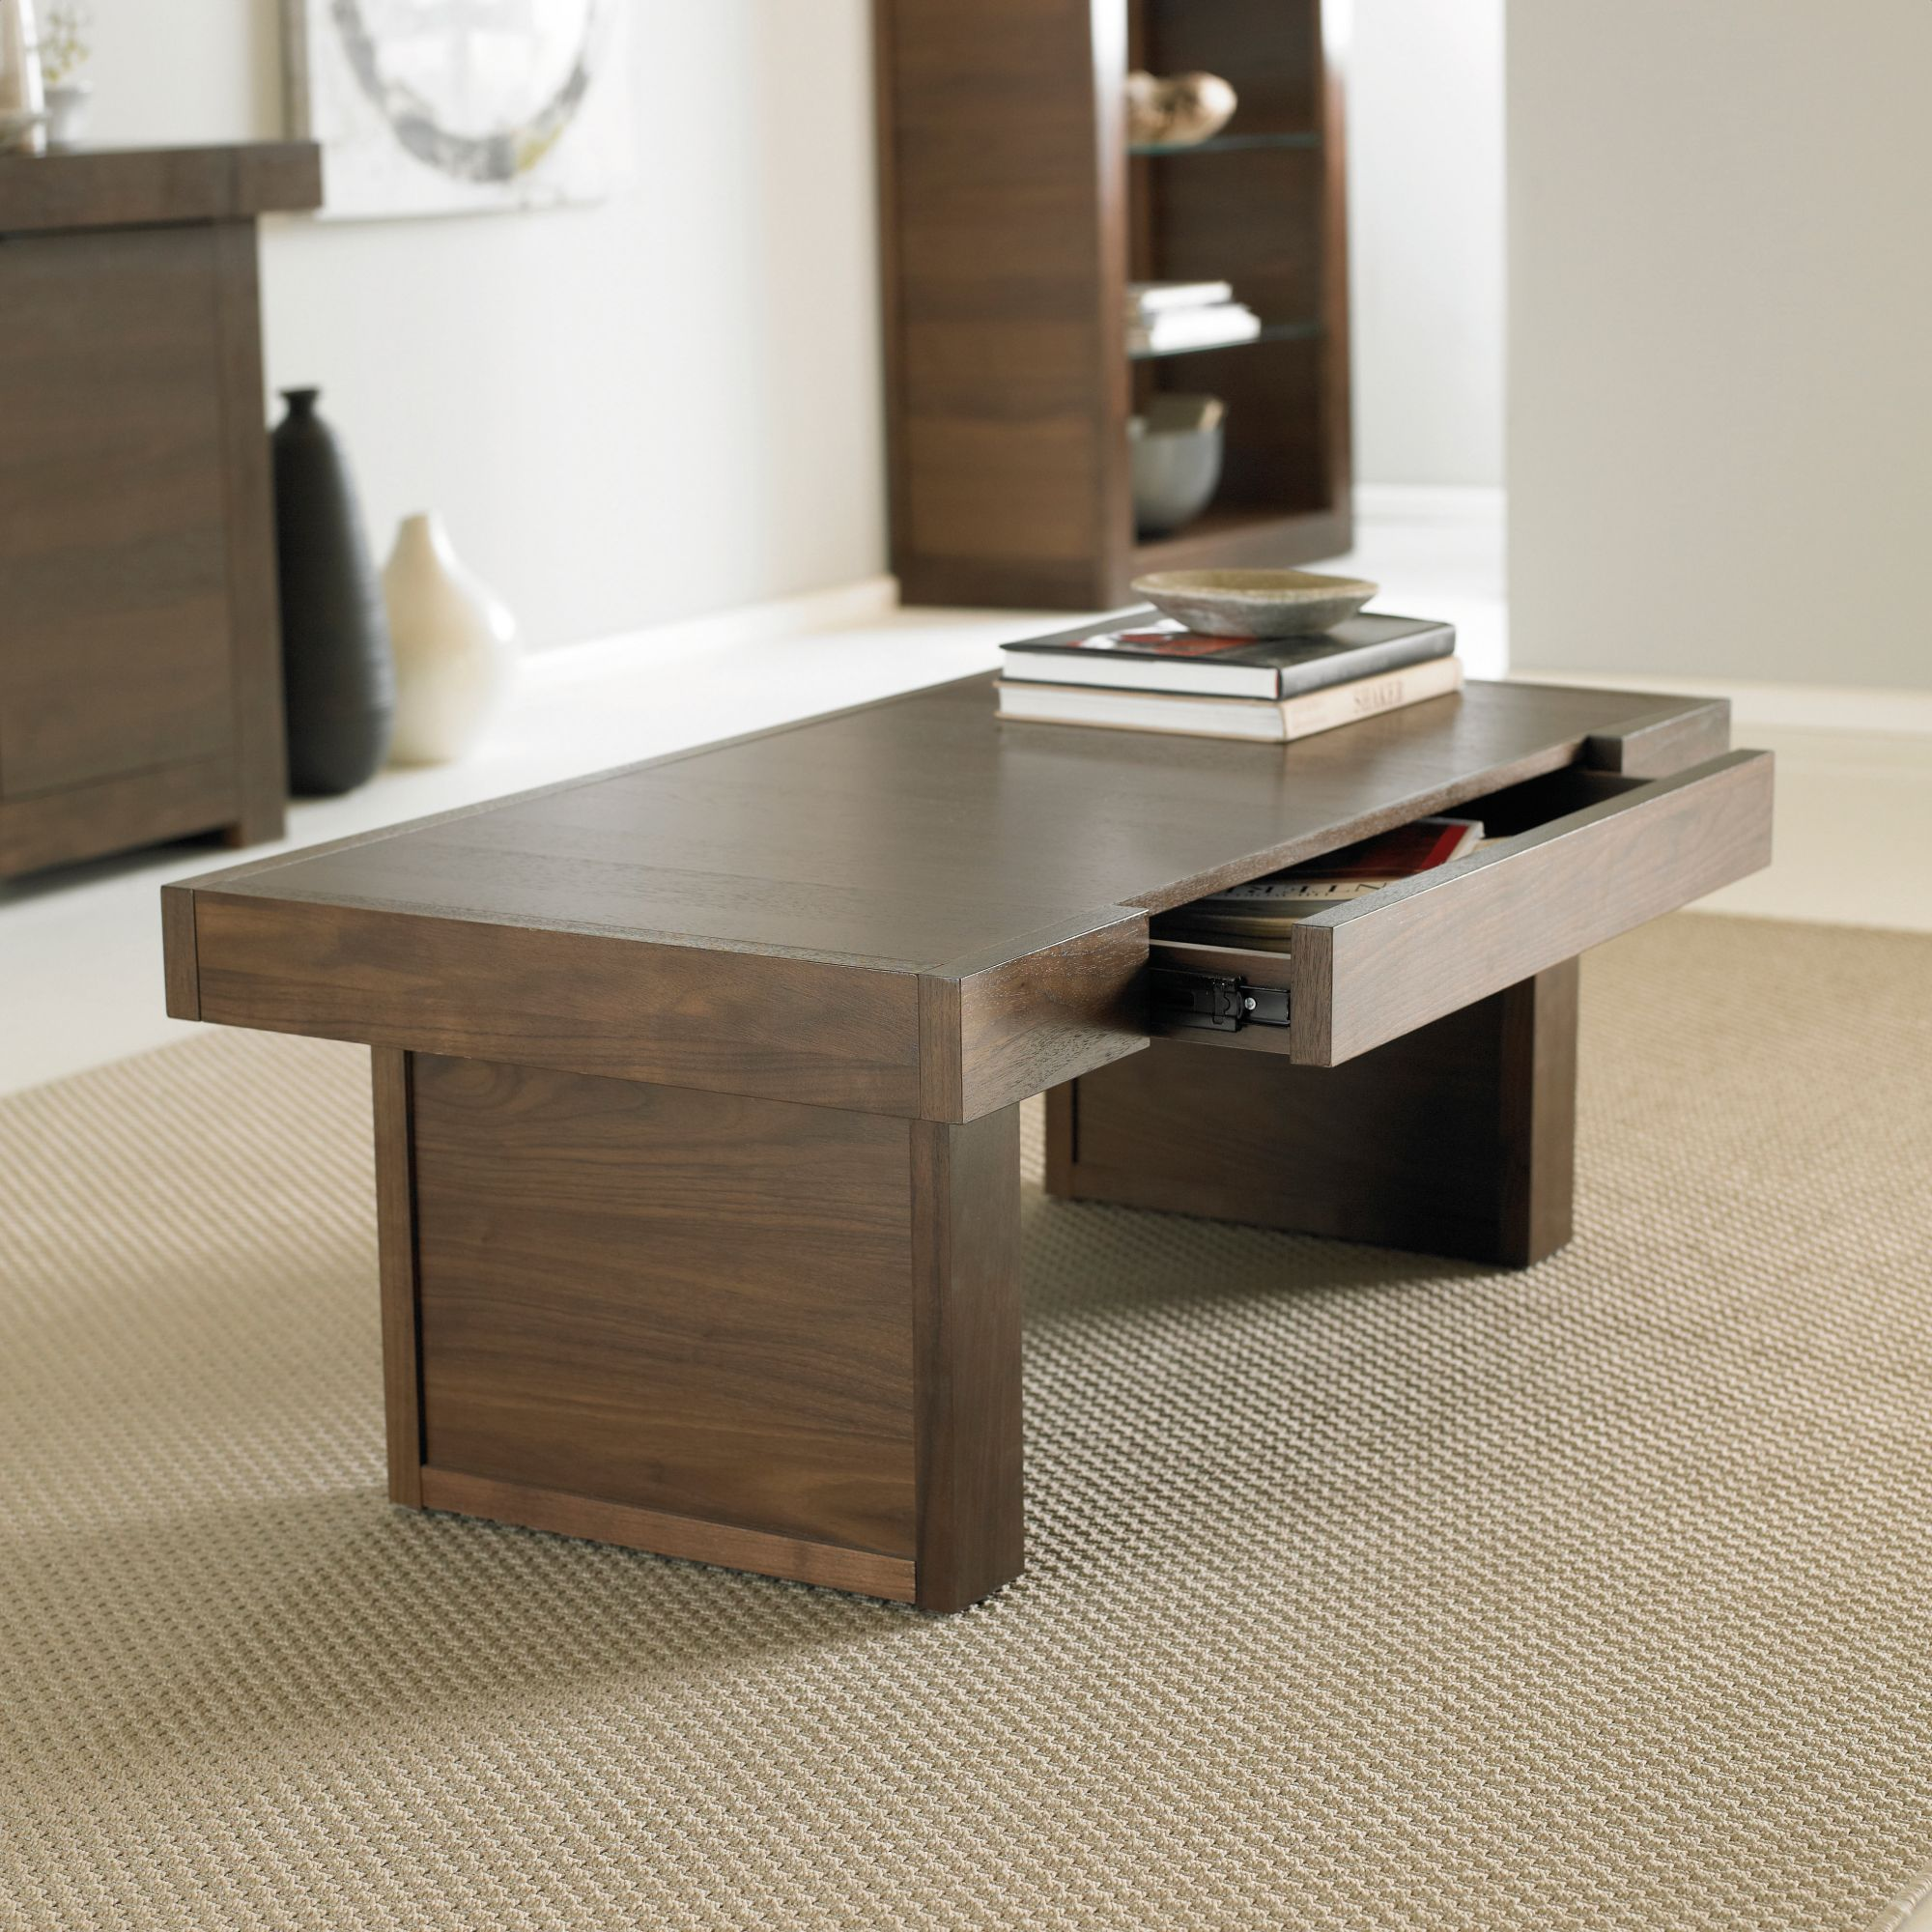 Walnut Oval Coffee Table Uk: Akita Walnut Coffee Table